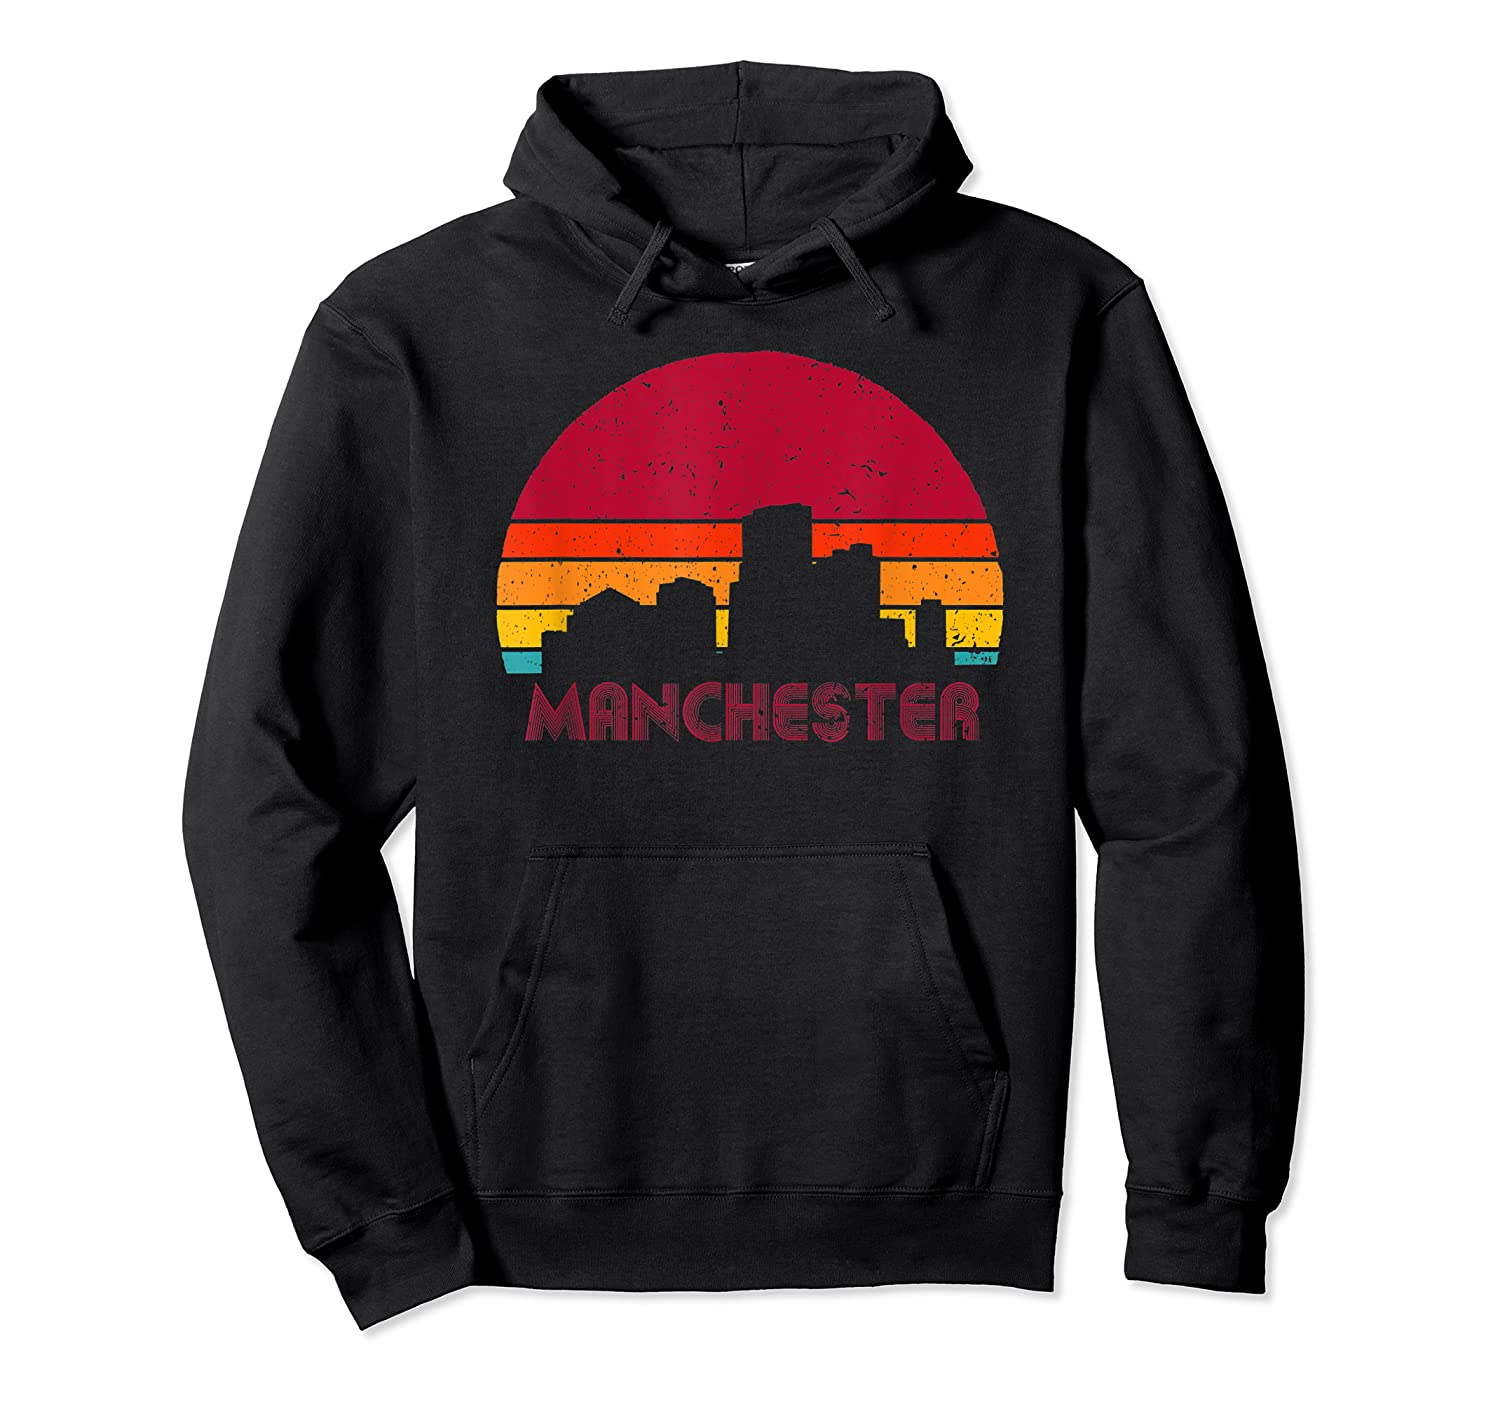 Retro Vintage Manchester City New Hampshire Designs Shirts Unisex Pullover Hoodie